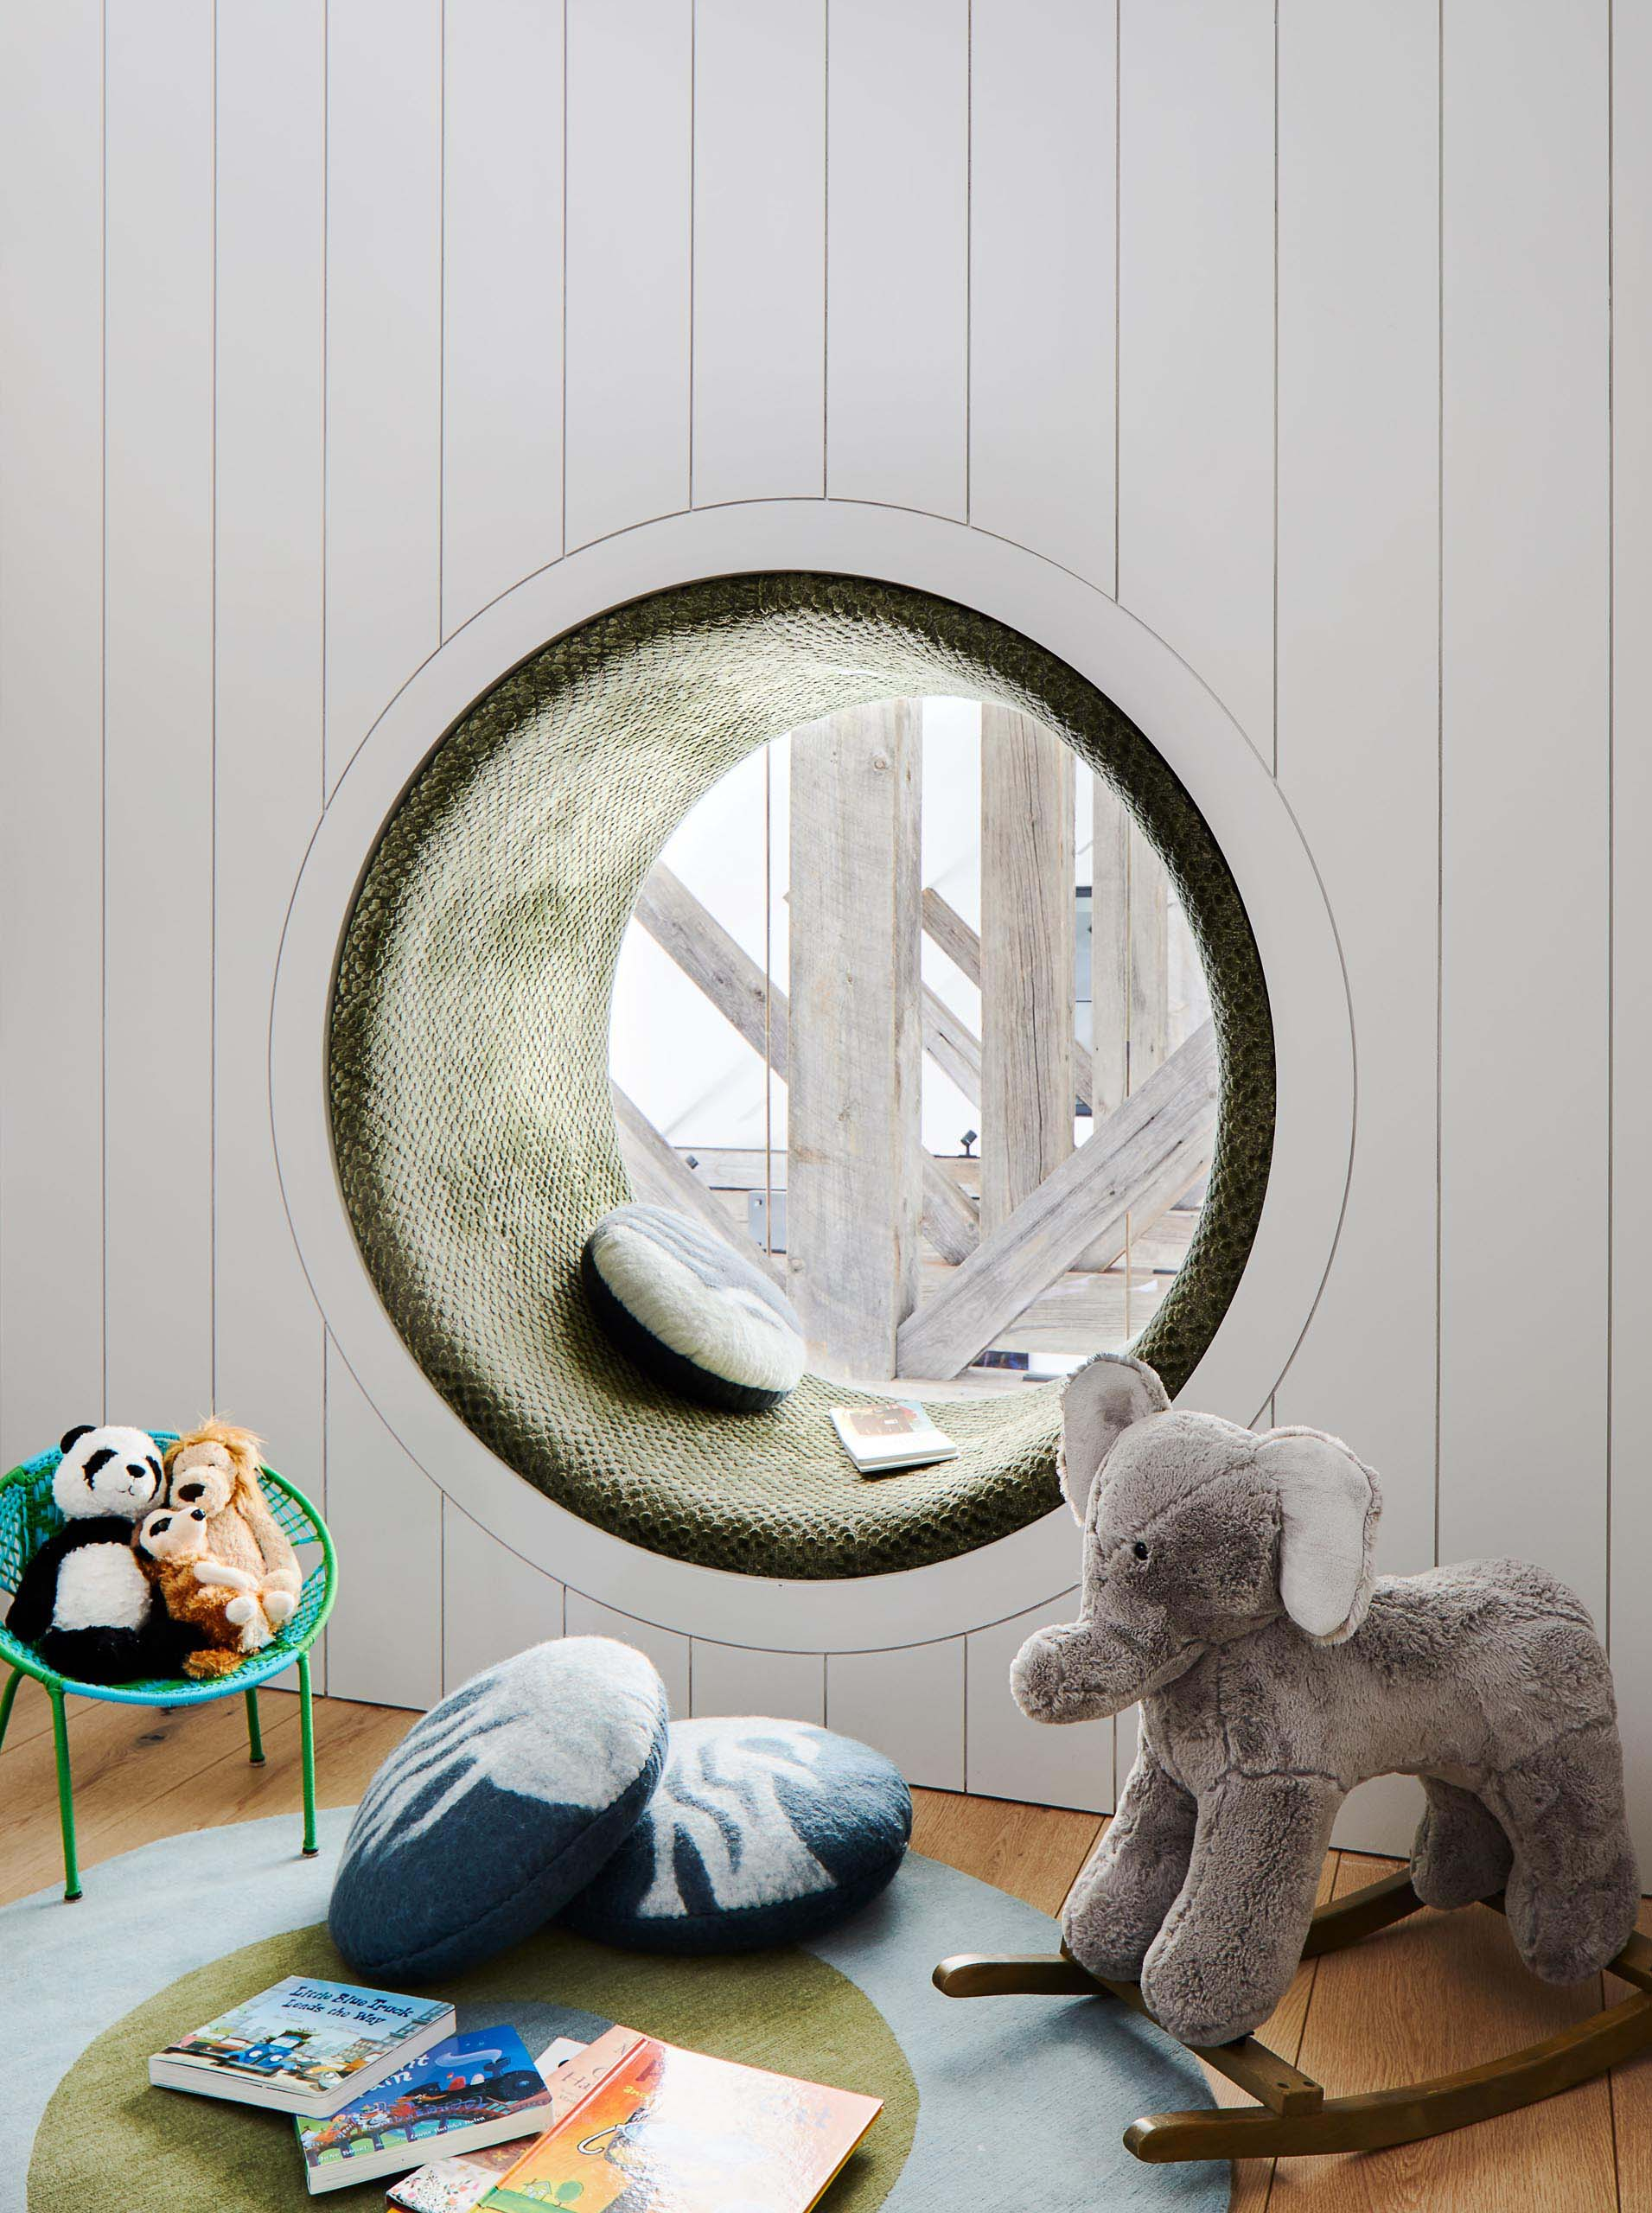 In this modern kids room, there's a cozy round window seat with an upholstered cushion that lines the space.